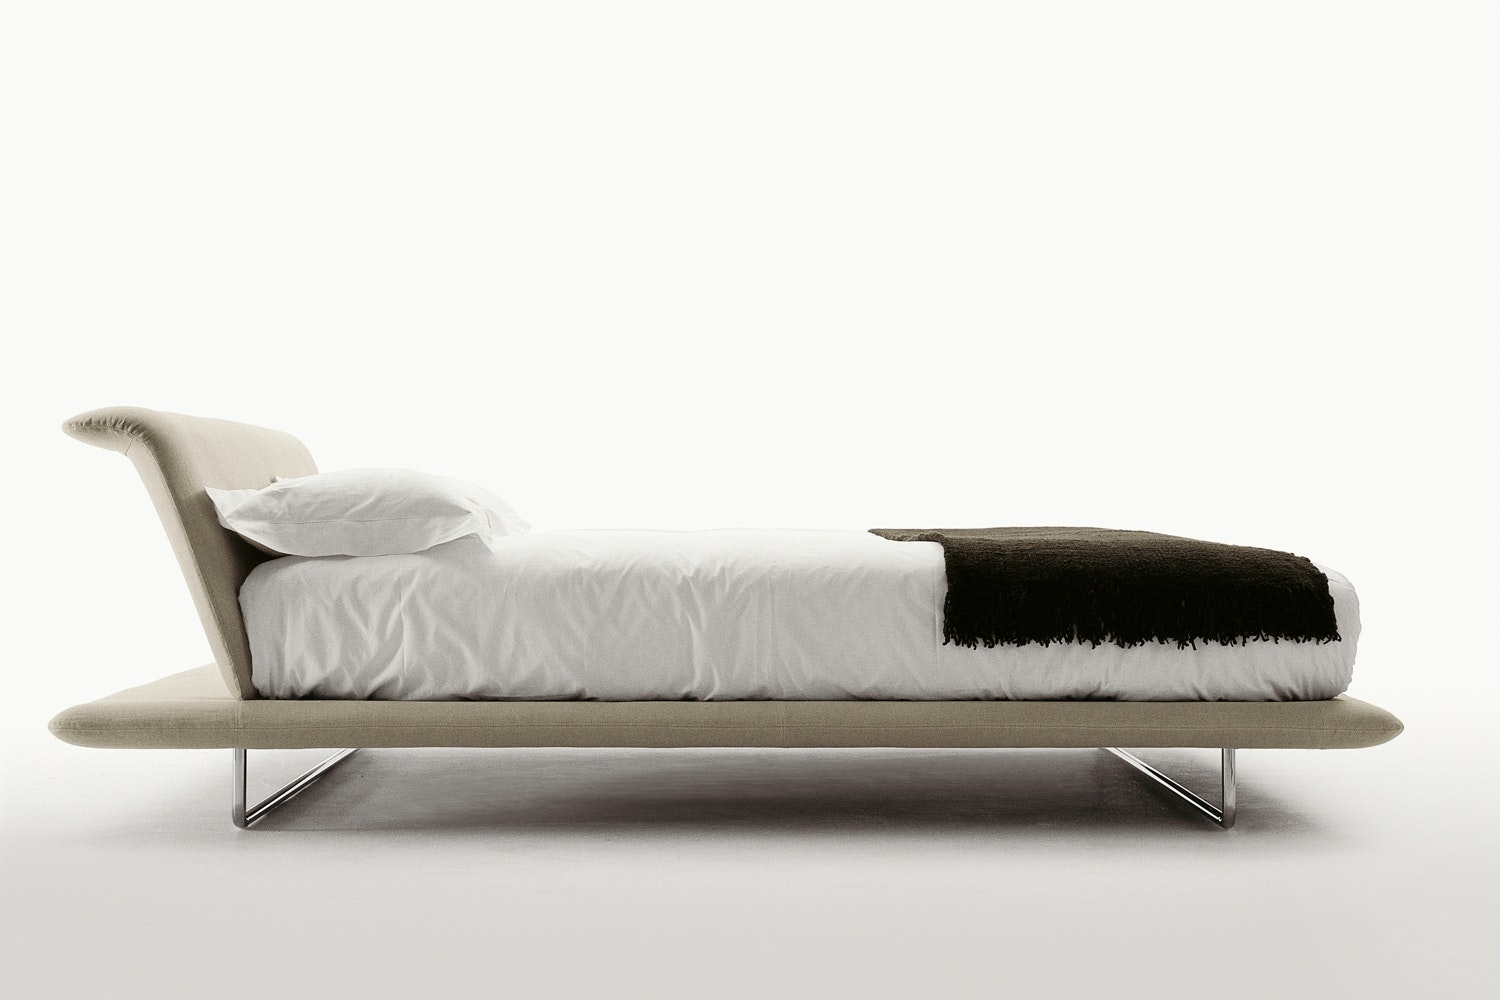 Siena King Bed in Fabric by Naoto Fukasawa for B&B Italia